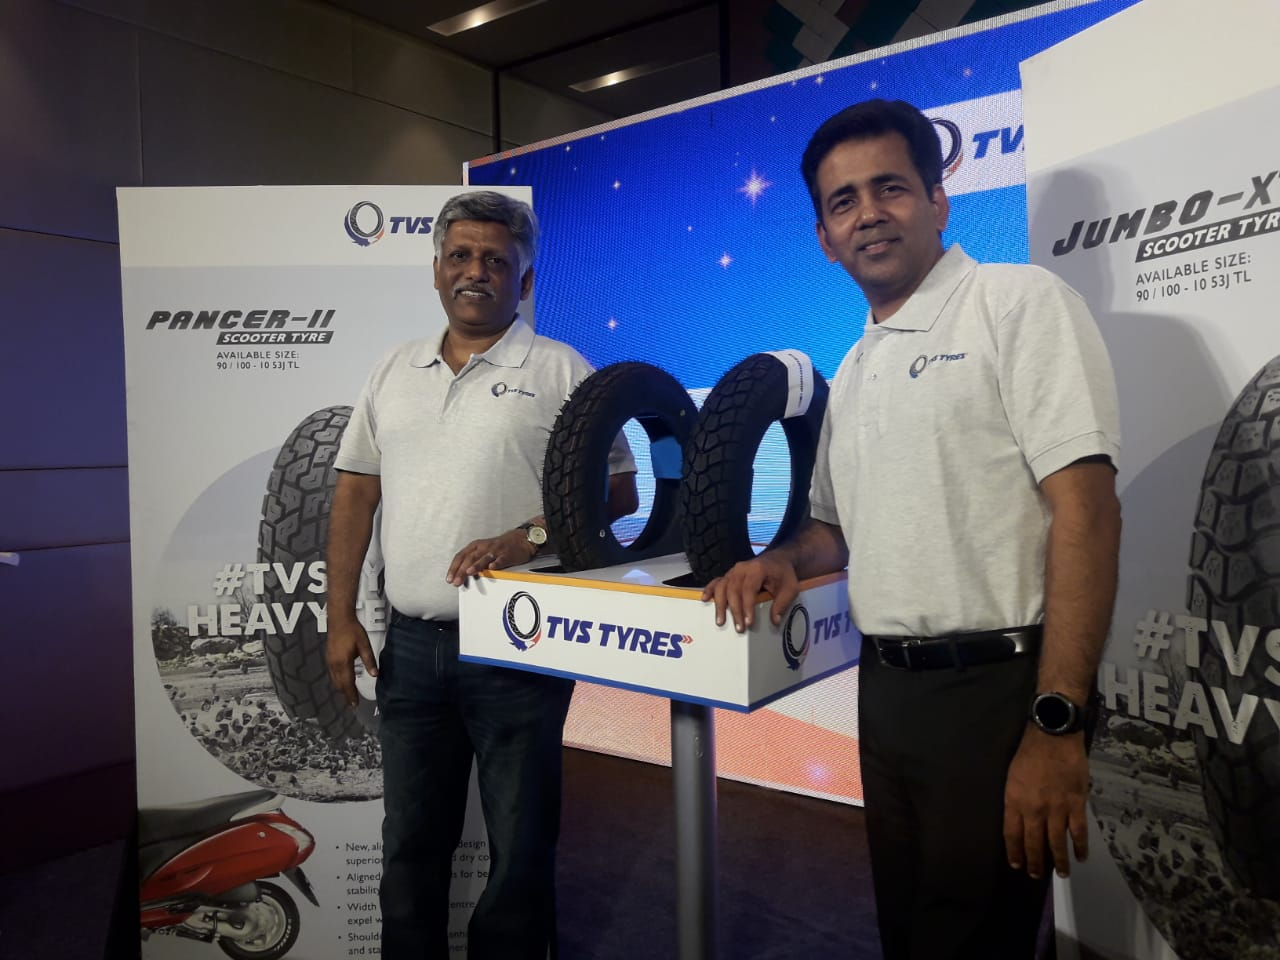 New TVS Scooter Tyre Launched - Jumbo XT and Pancer II (2)